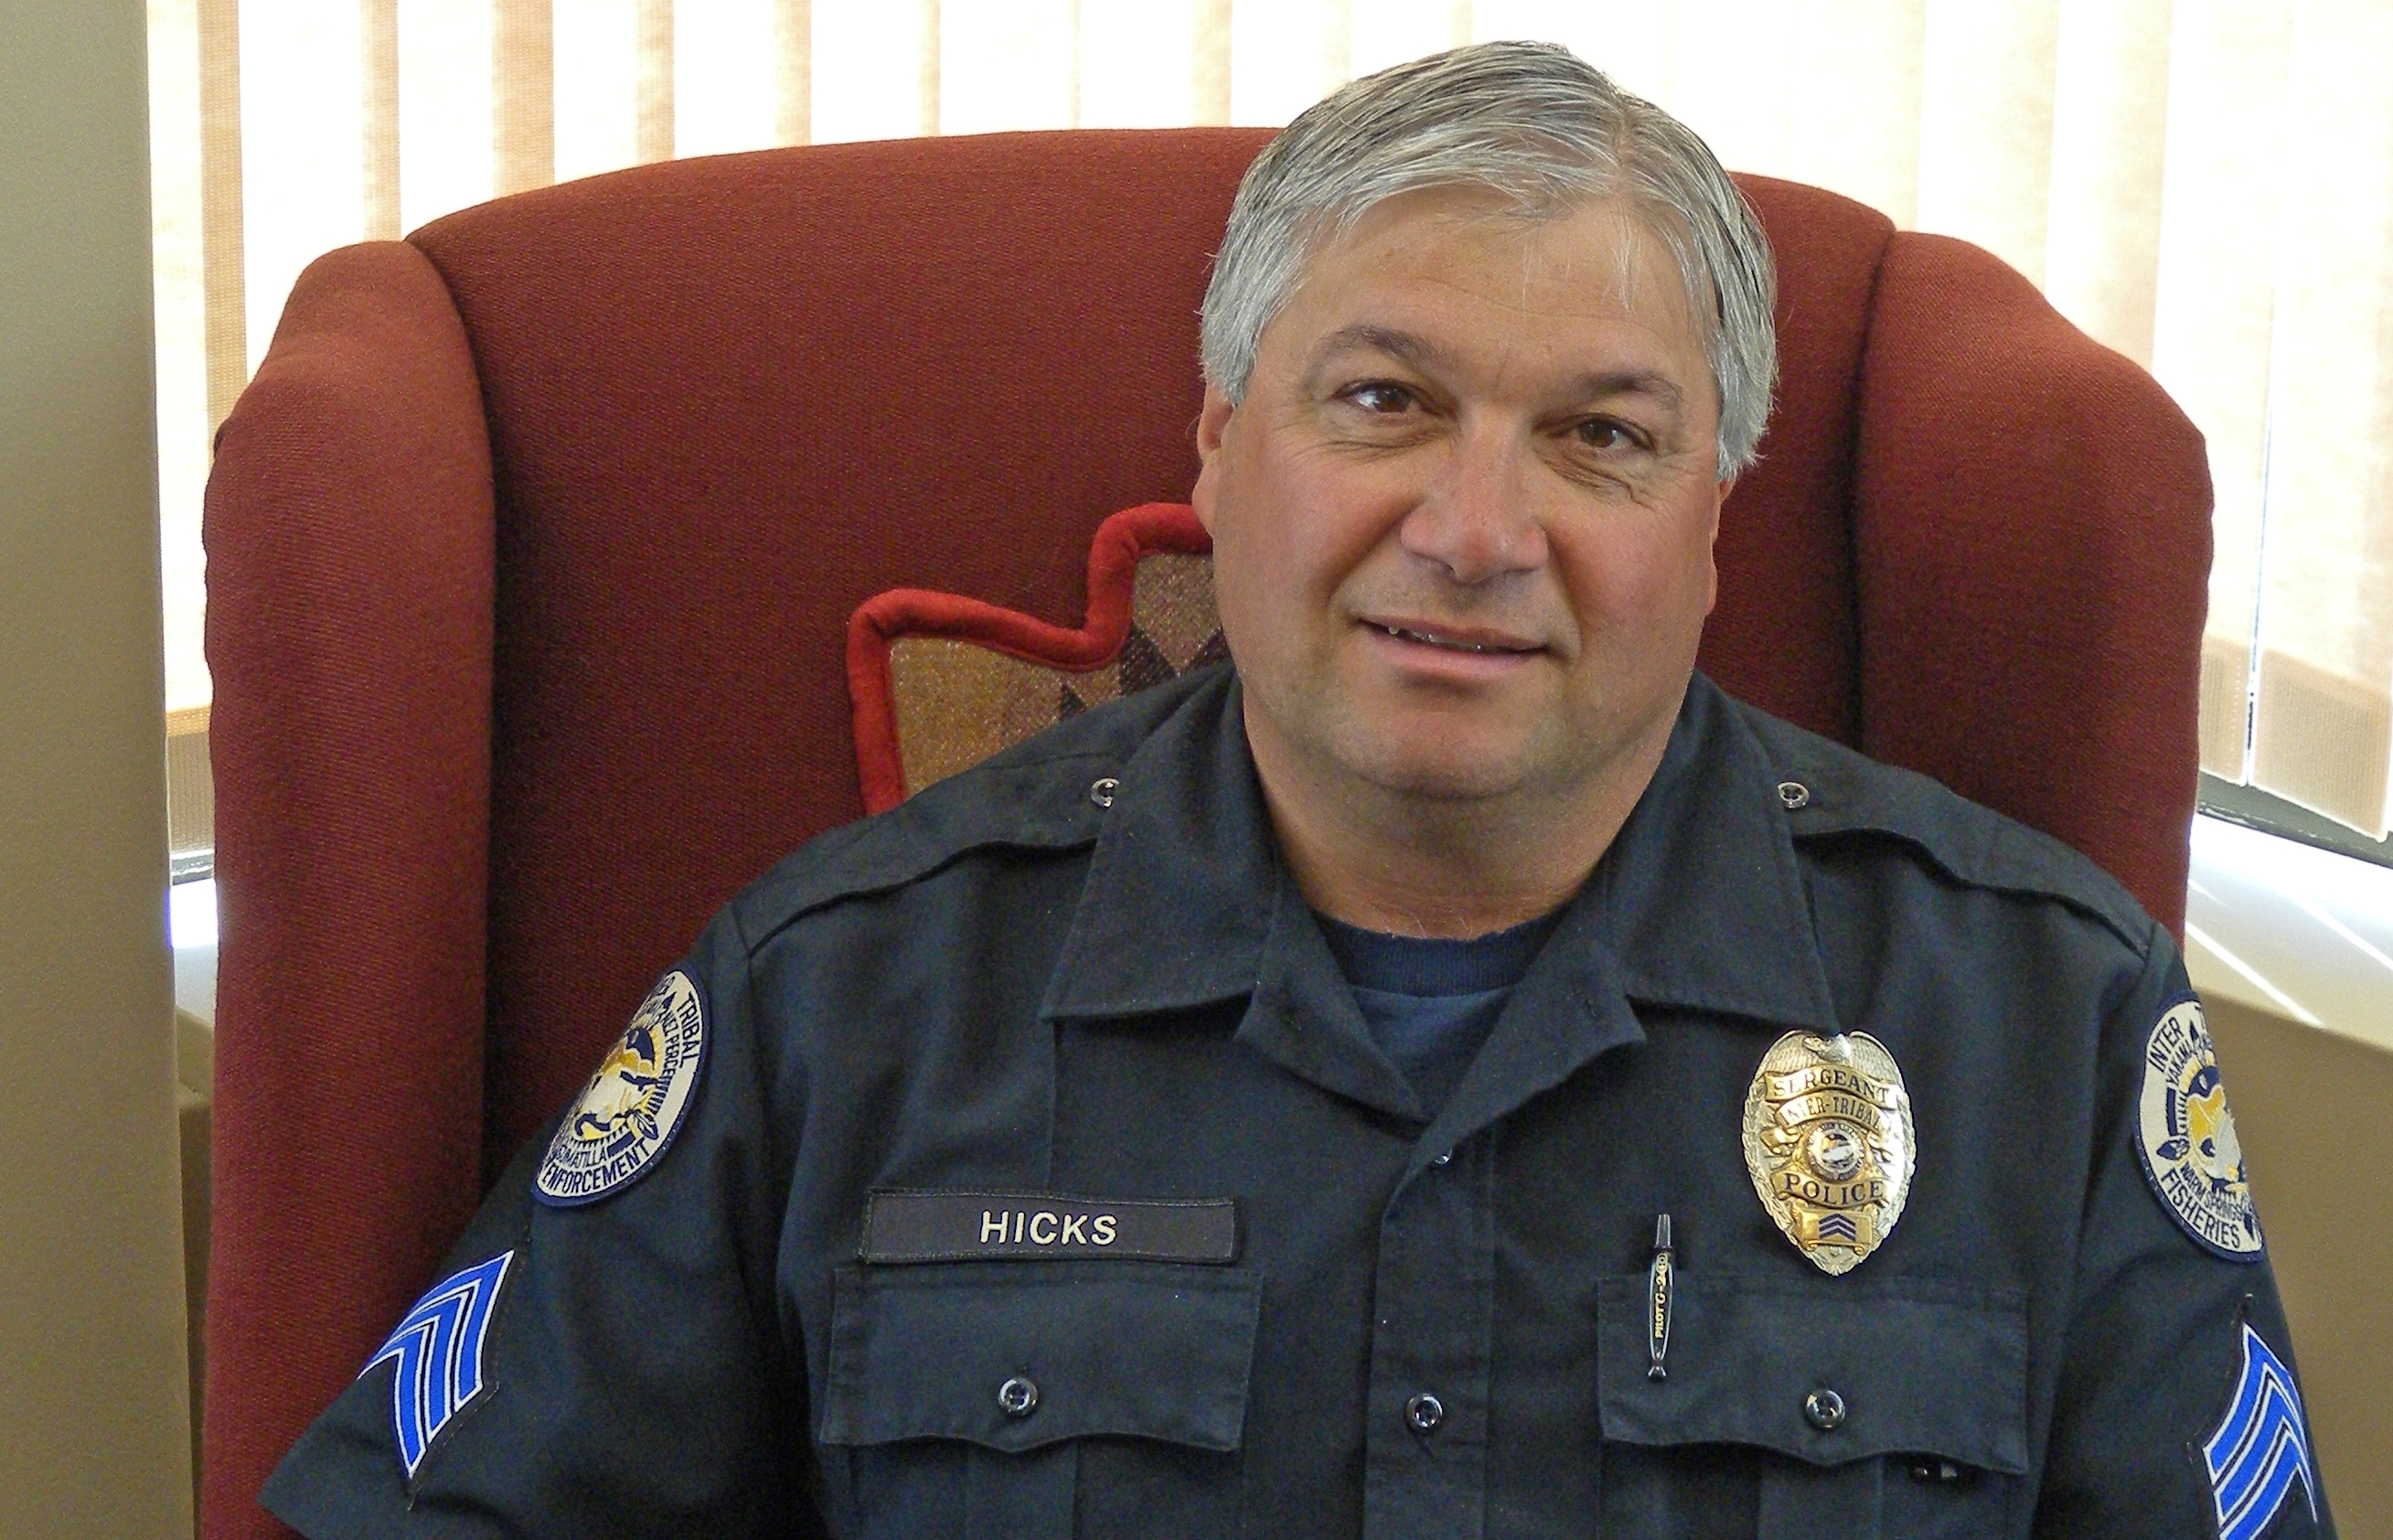 Sgt Hicks Promoted to Enforcement Chief